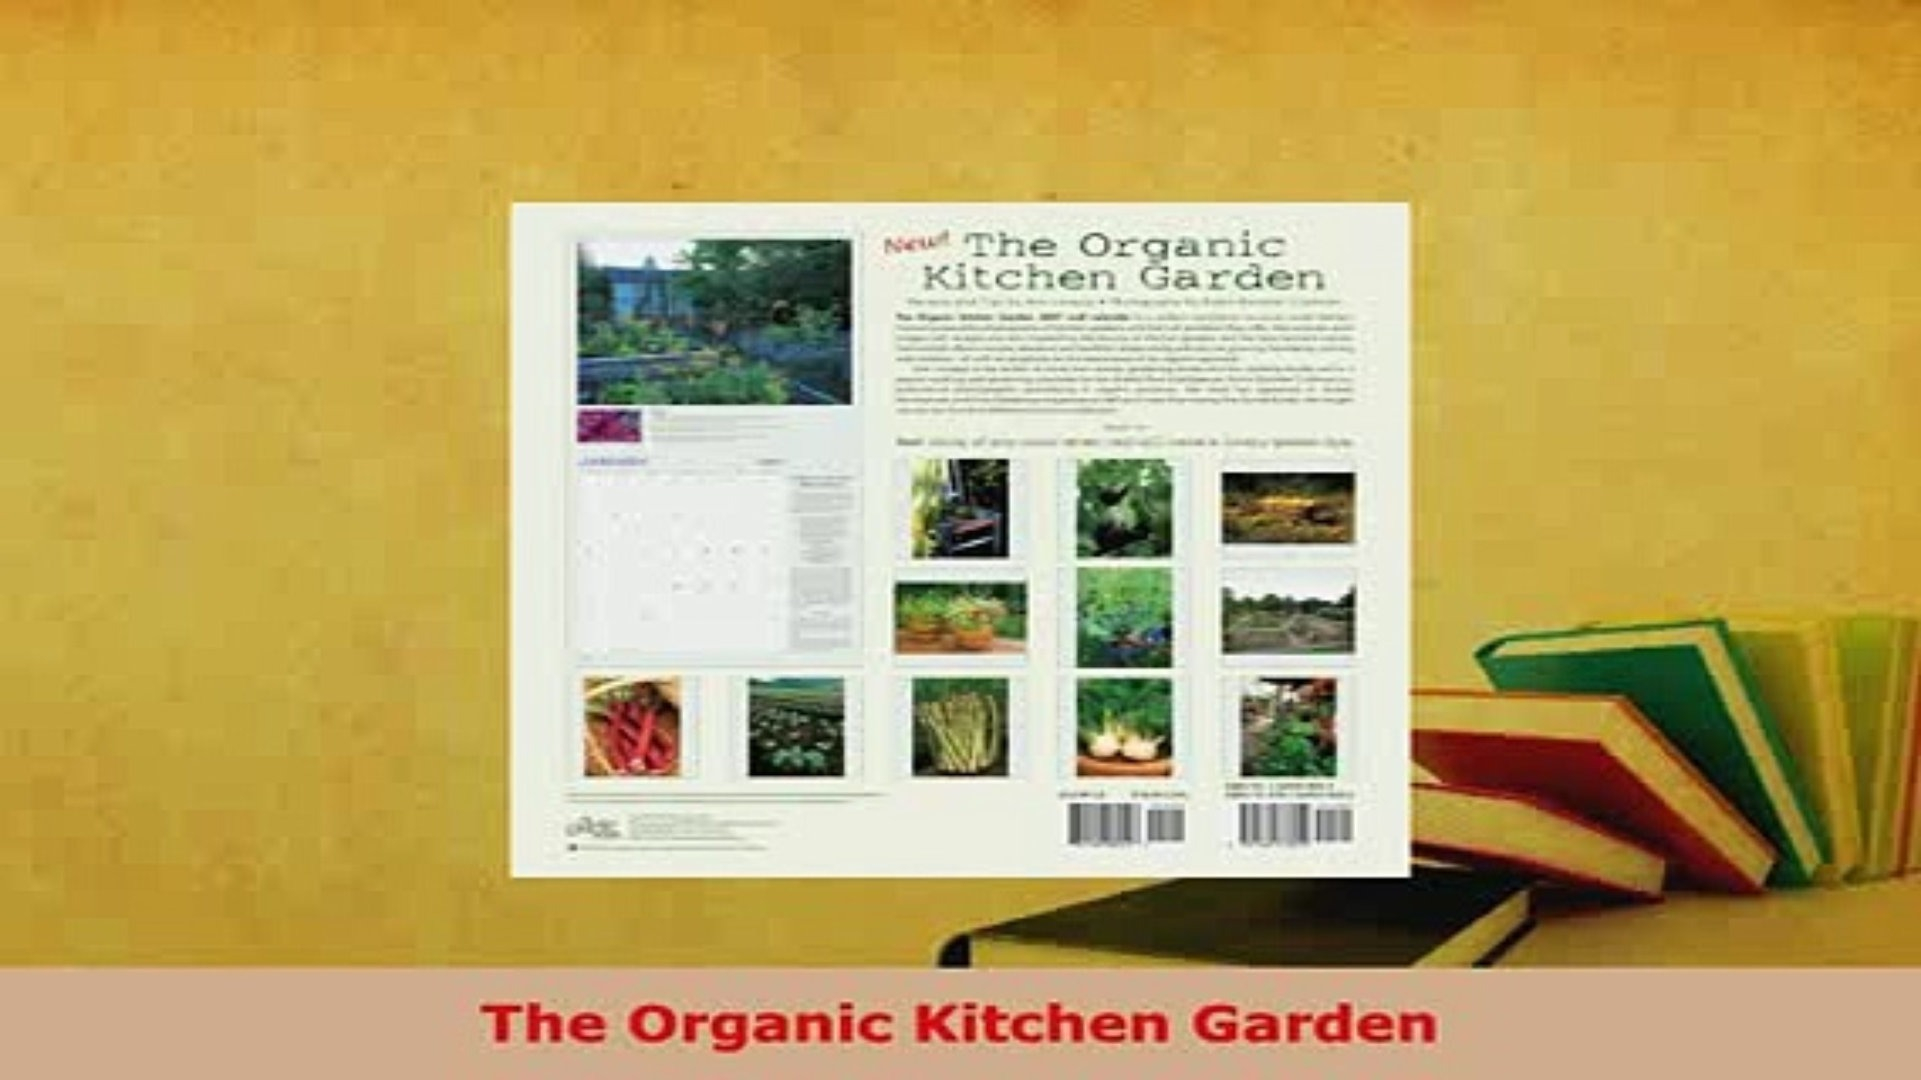 Glamorous Download The Organic Kitchen Garden Pdf Online - Video Dailymotion intended for Unique The Organic Kitchen